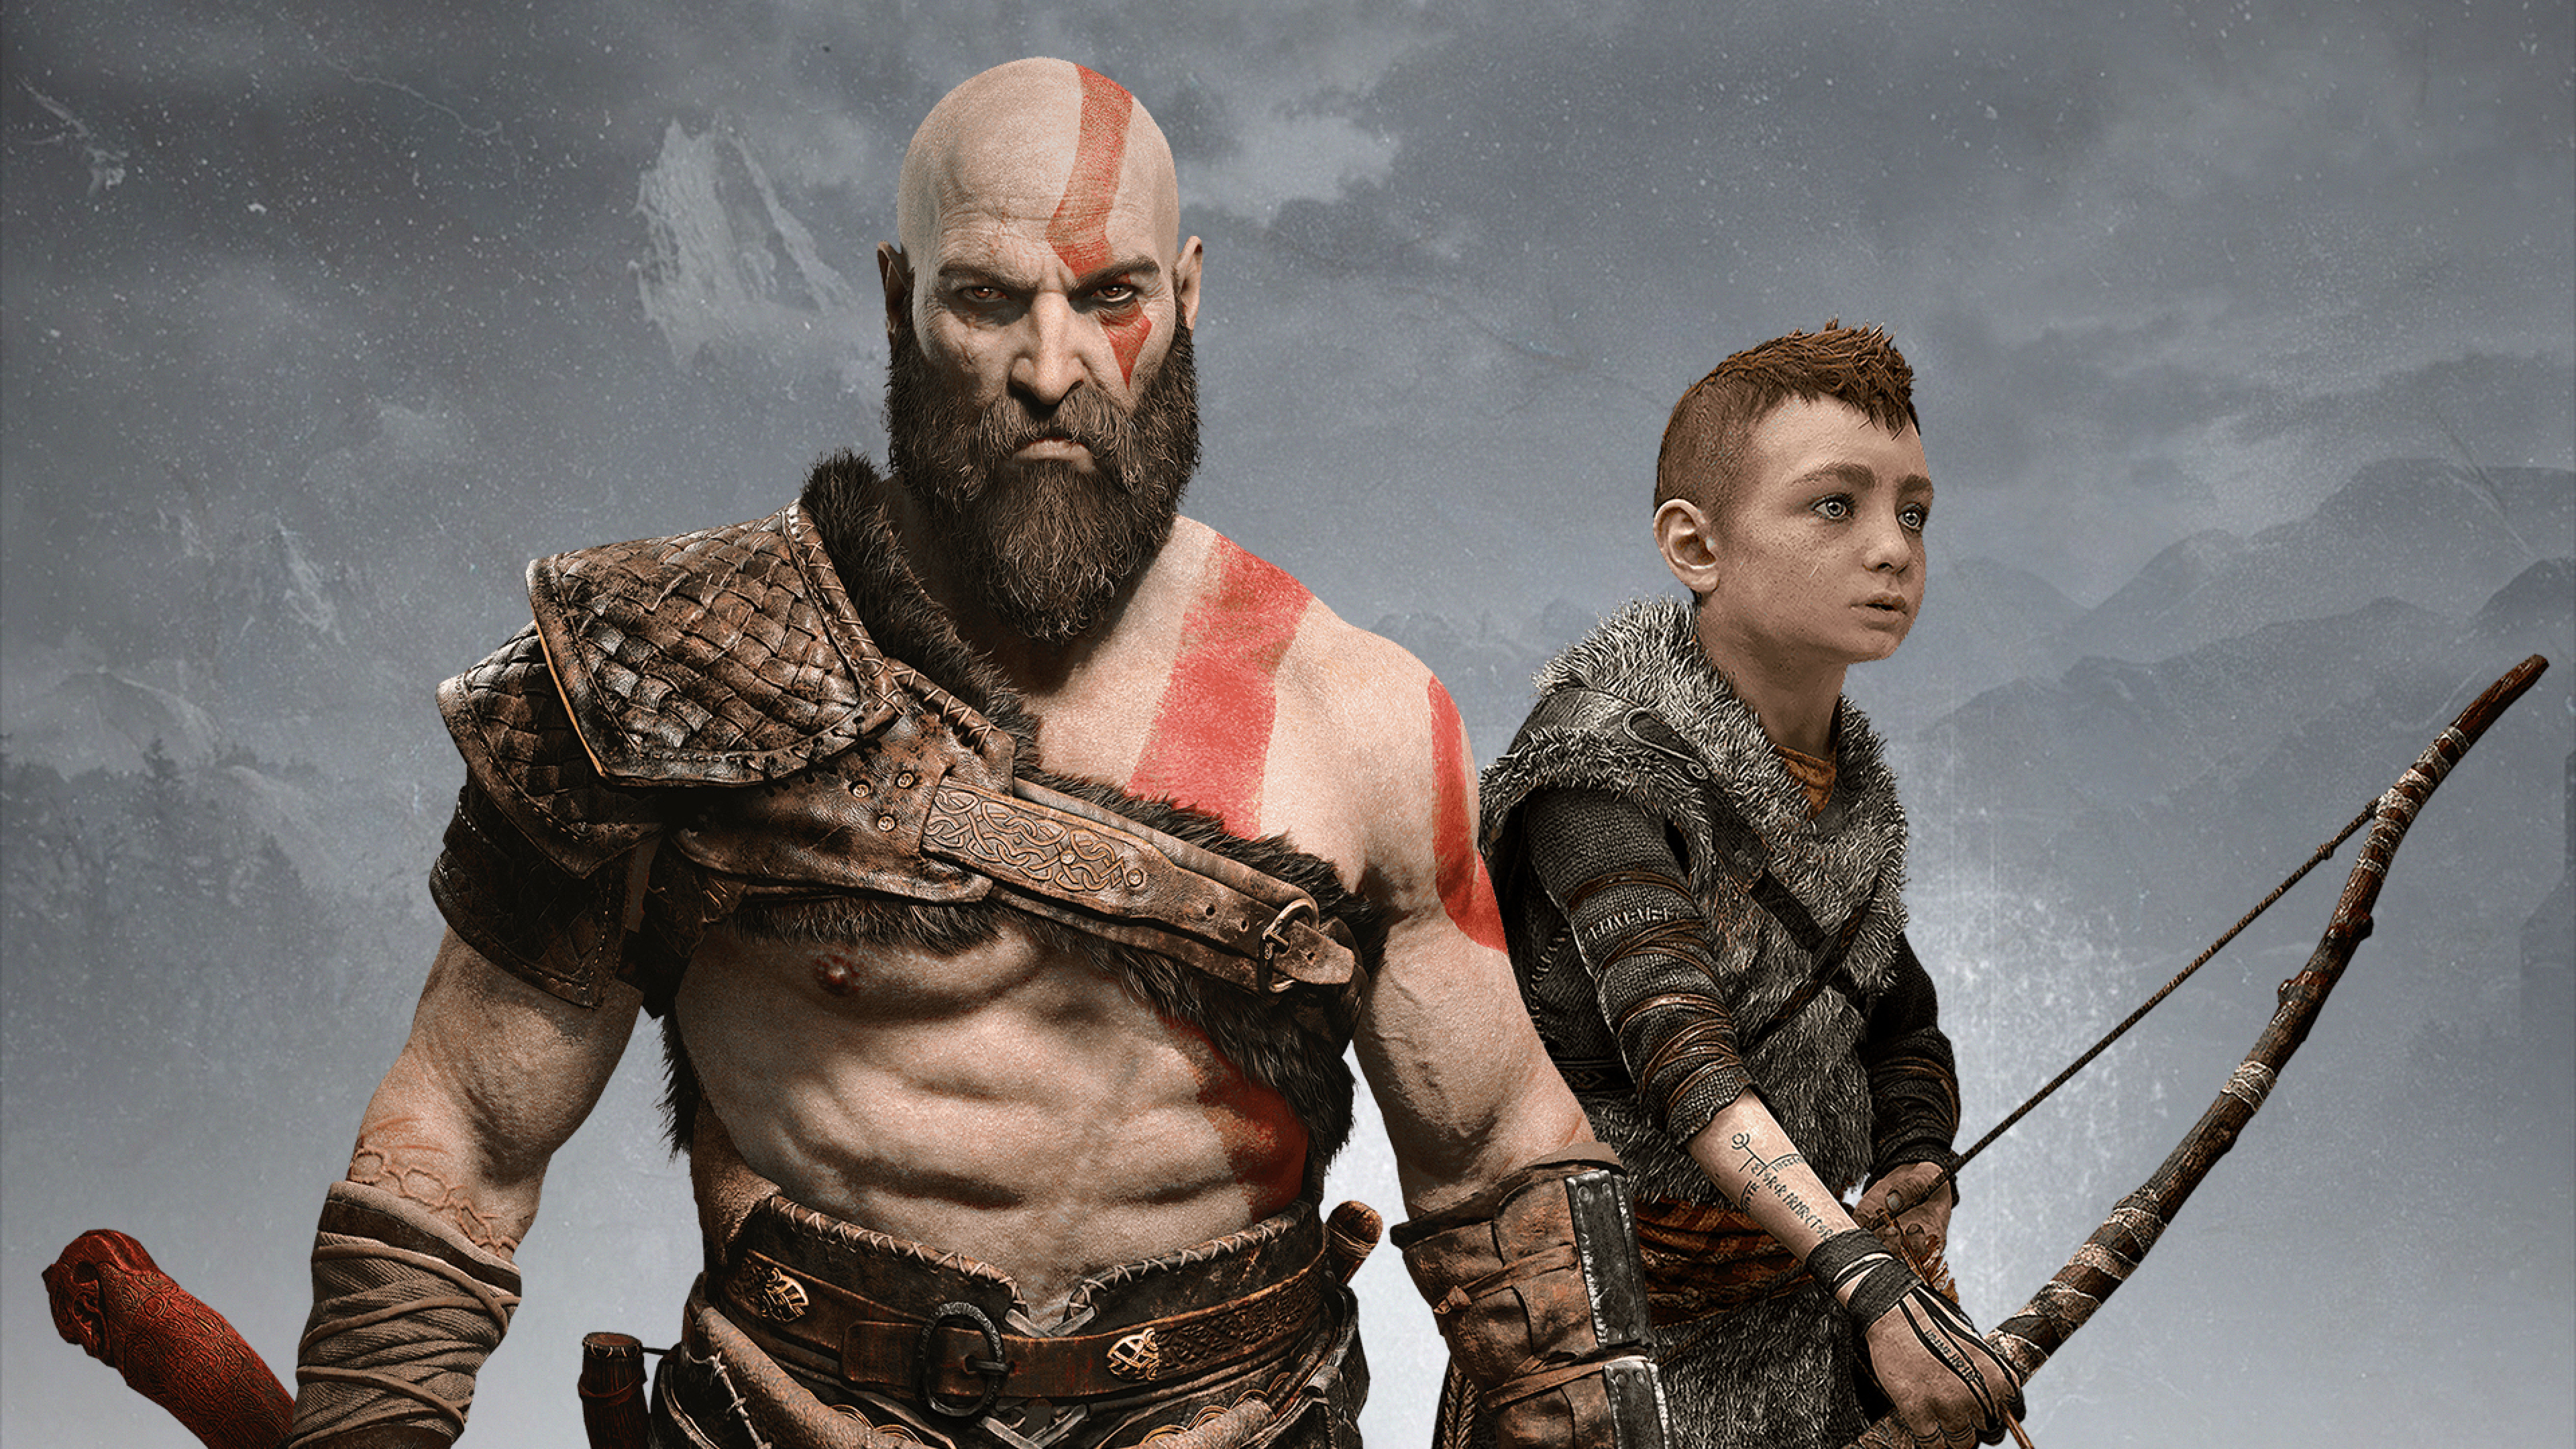 3840x2160 Atreus Kratos God Of War 2018 4k Wallpaper Hd Games 4k